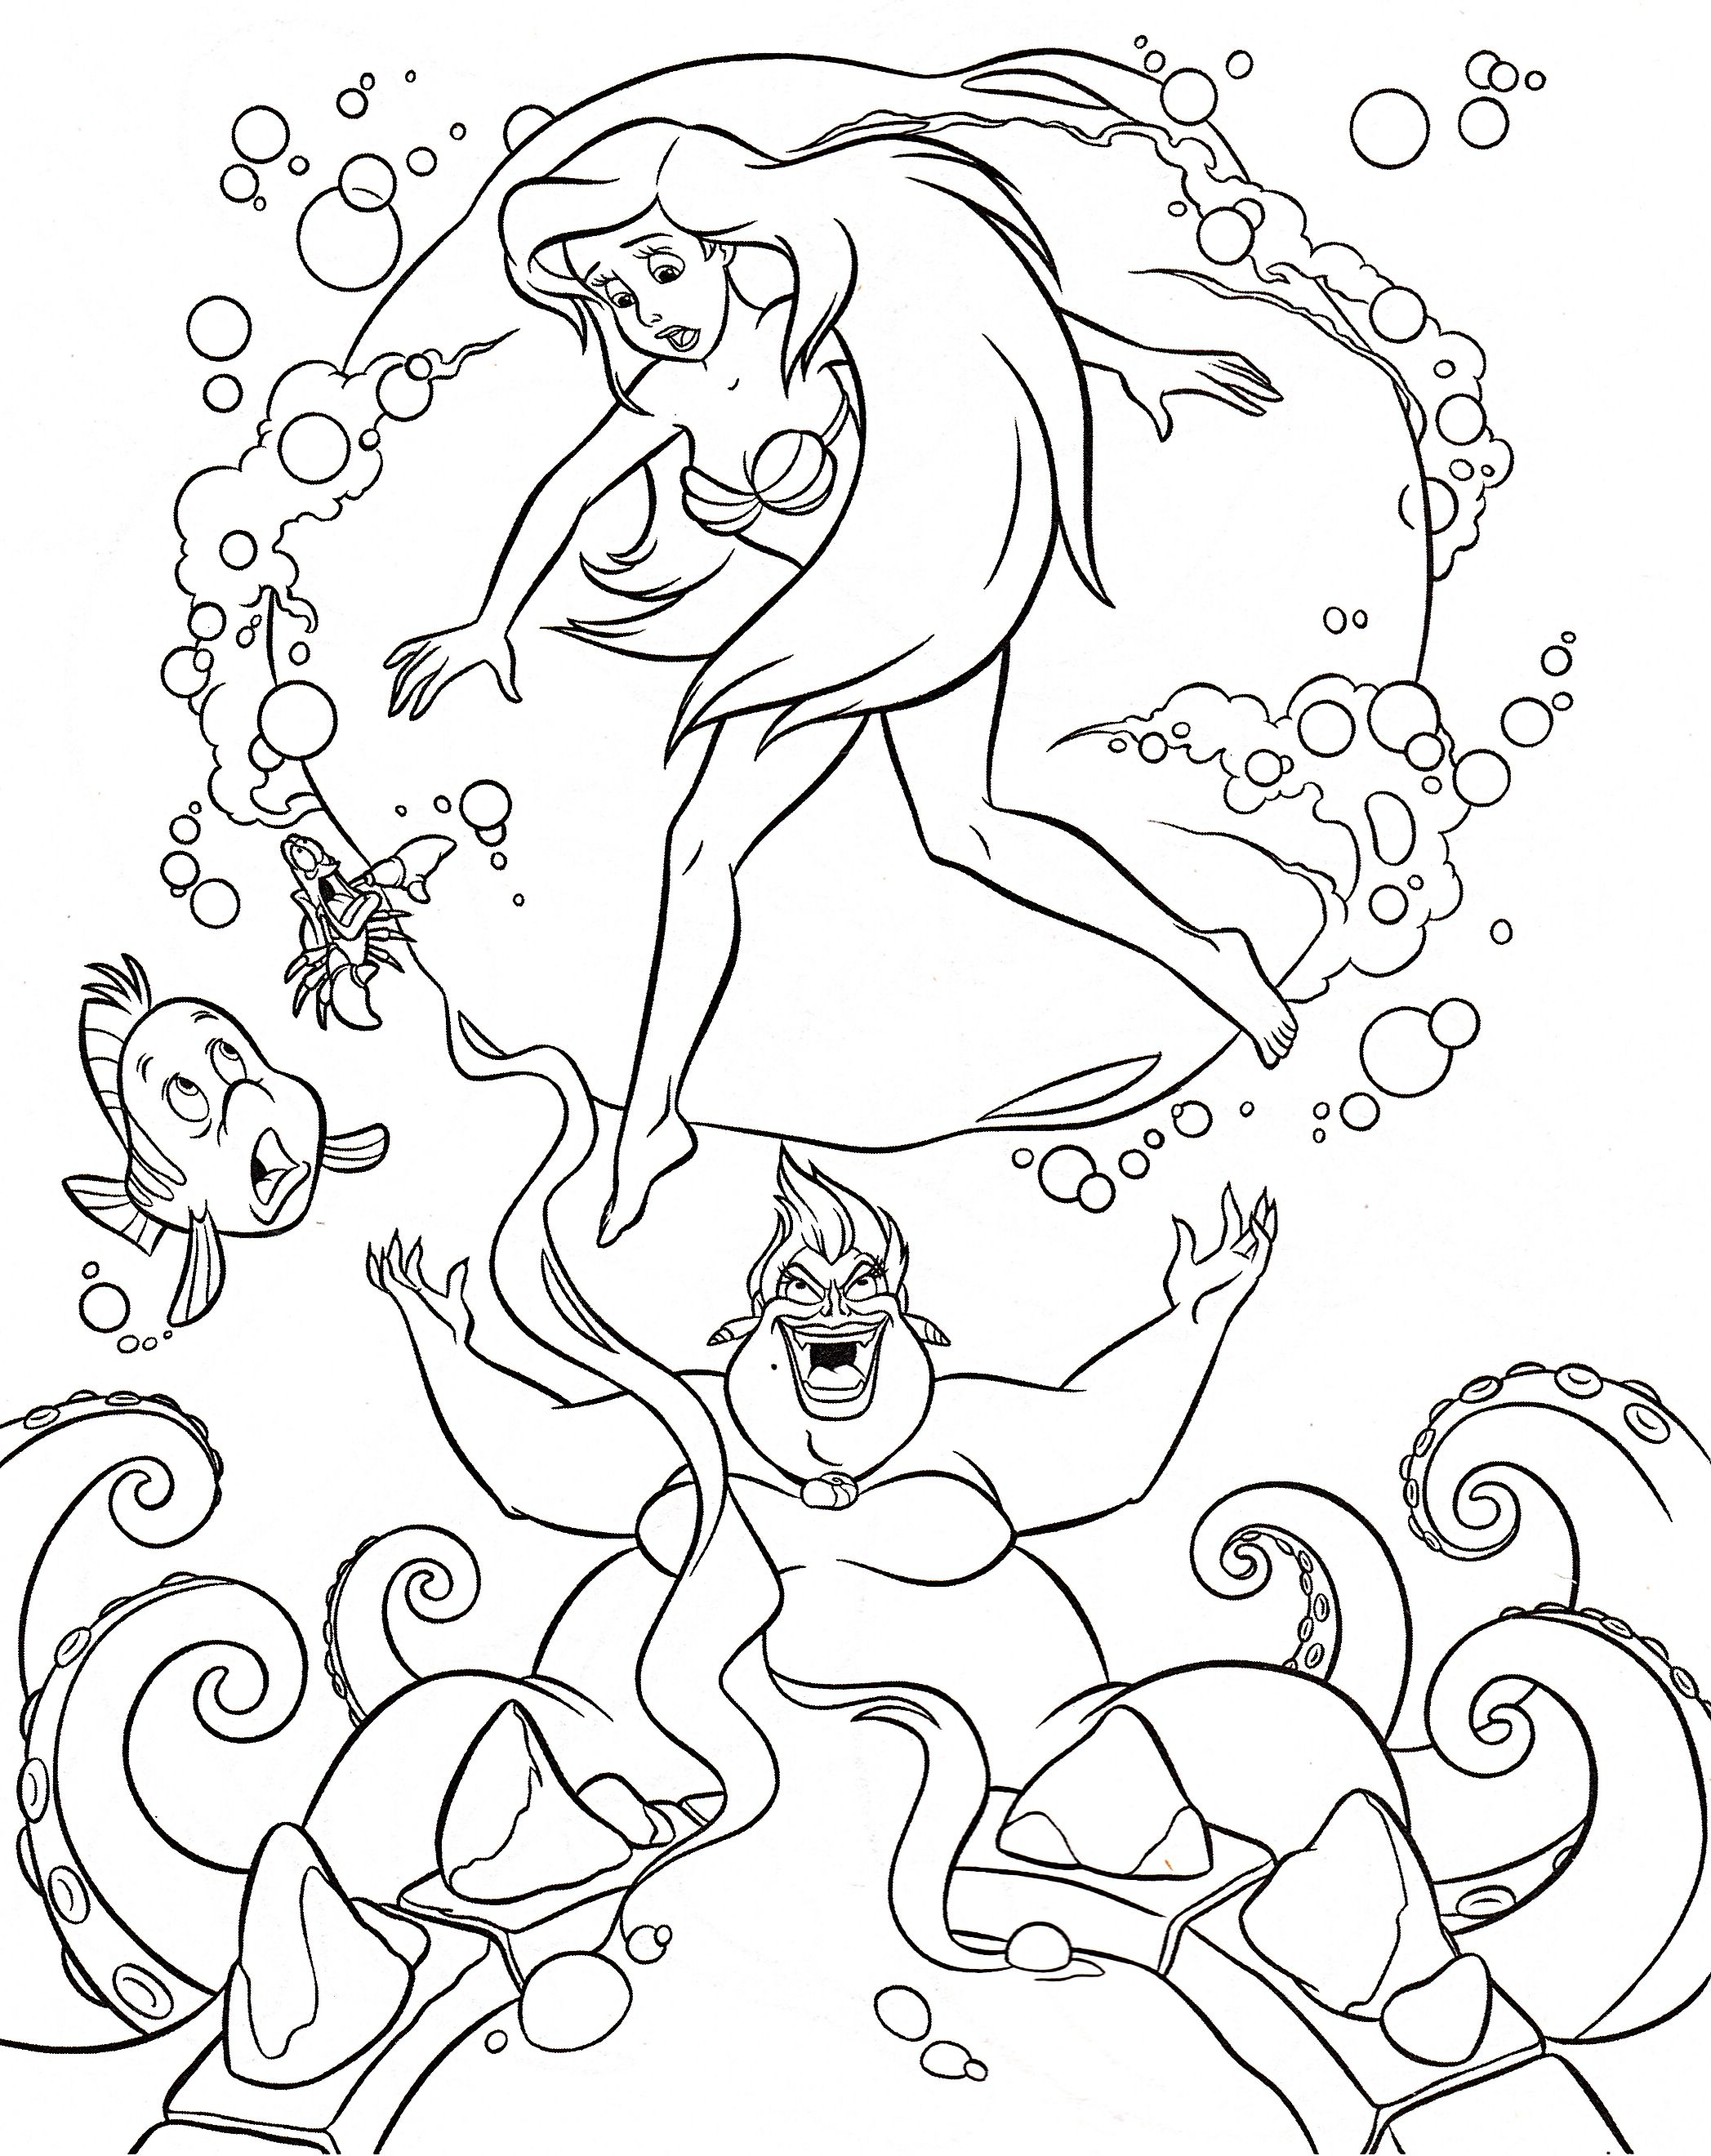 ursula coloring pages free online printable coloring pages sheets for kids get the latest free ursula coloring pages images favorite coloring pages to